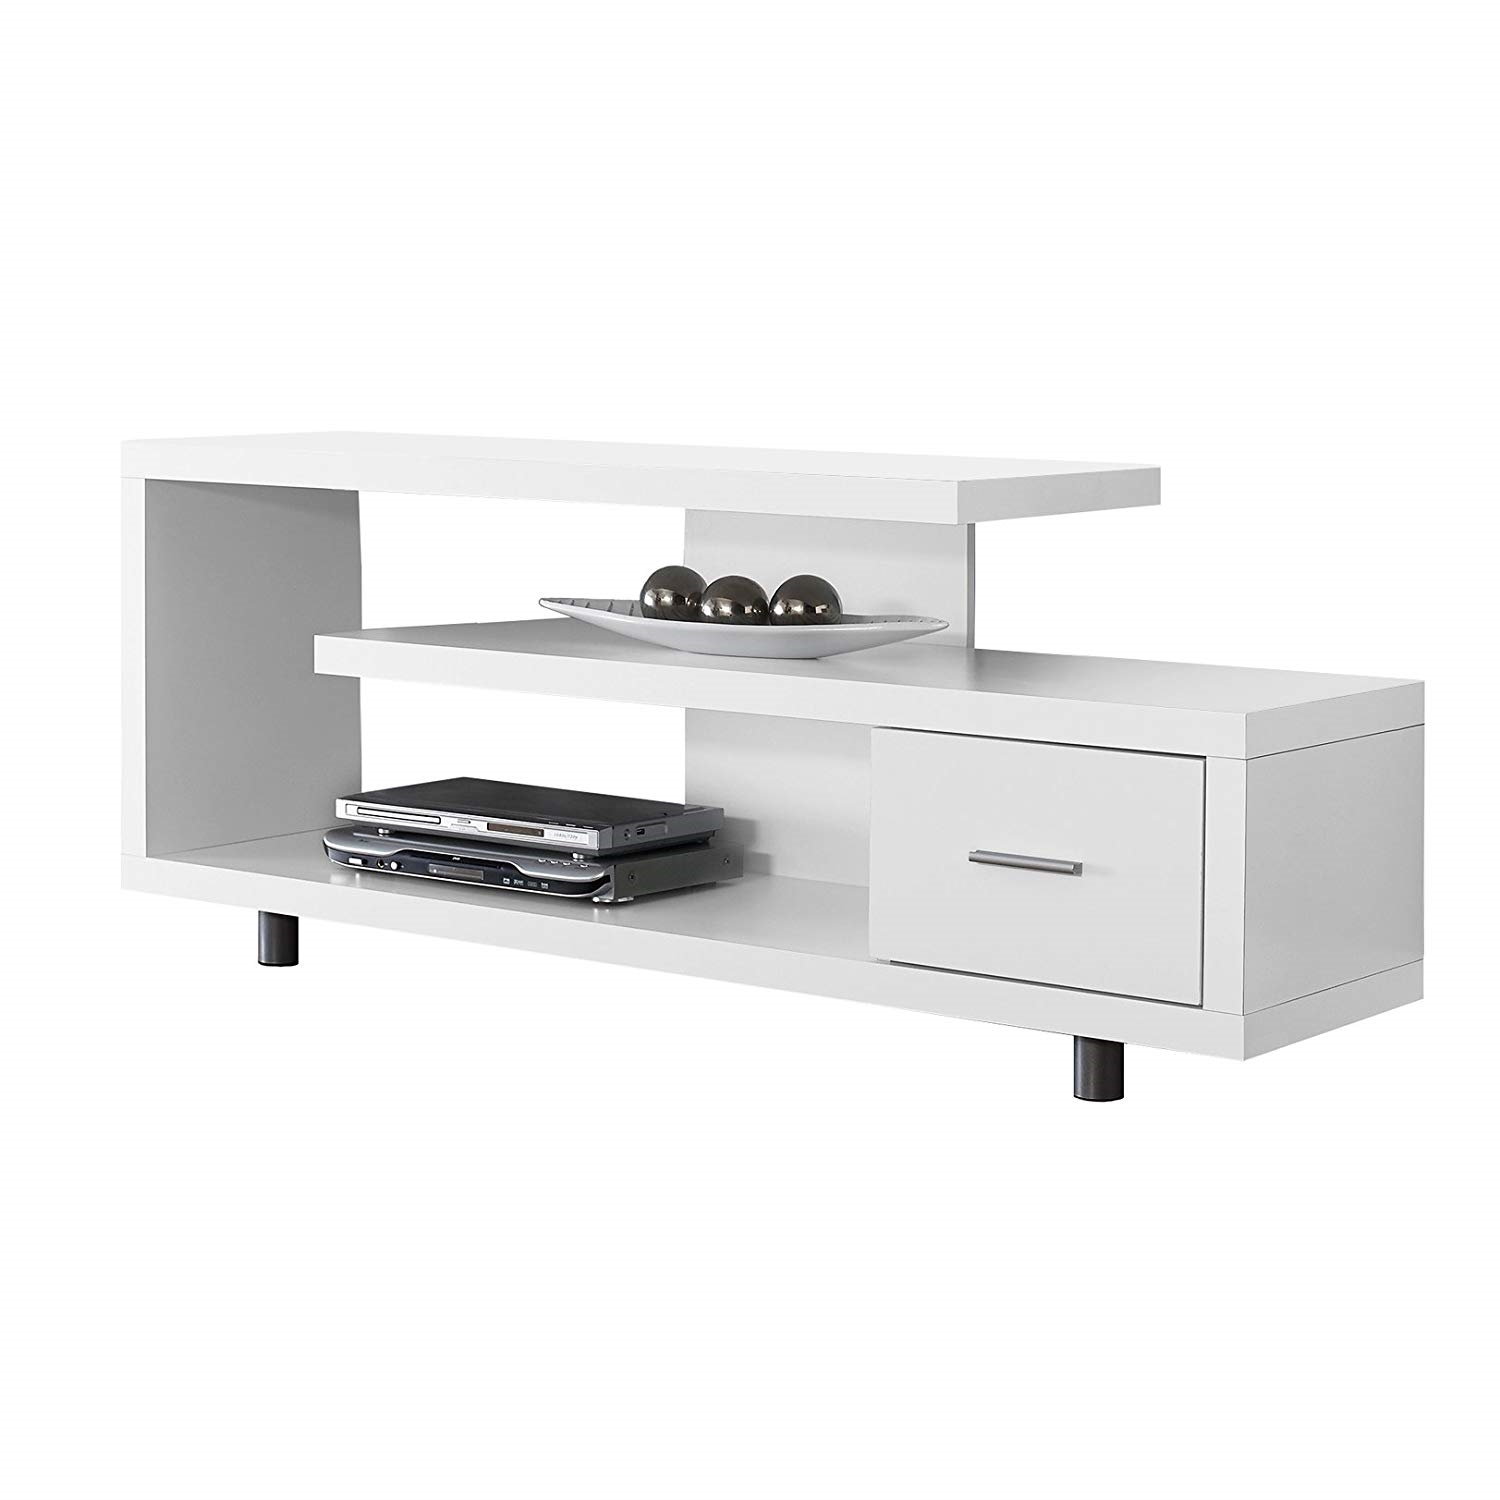 Magnificent White Modern Tv Stand Fits Up To 60 Inch Flat Screen Tv Machost Co Dining Chair Design Ideas Machostcouk